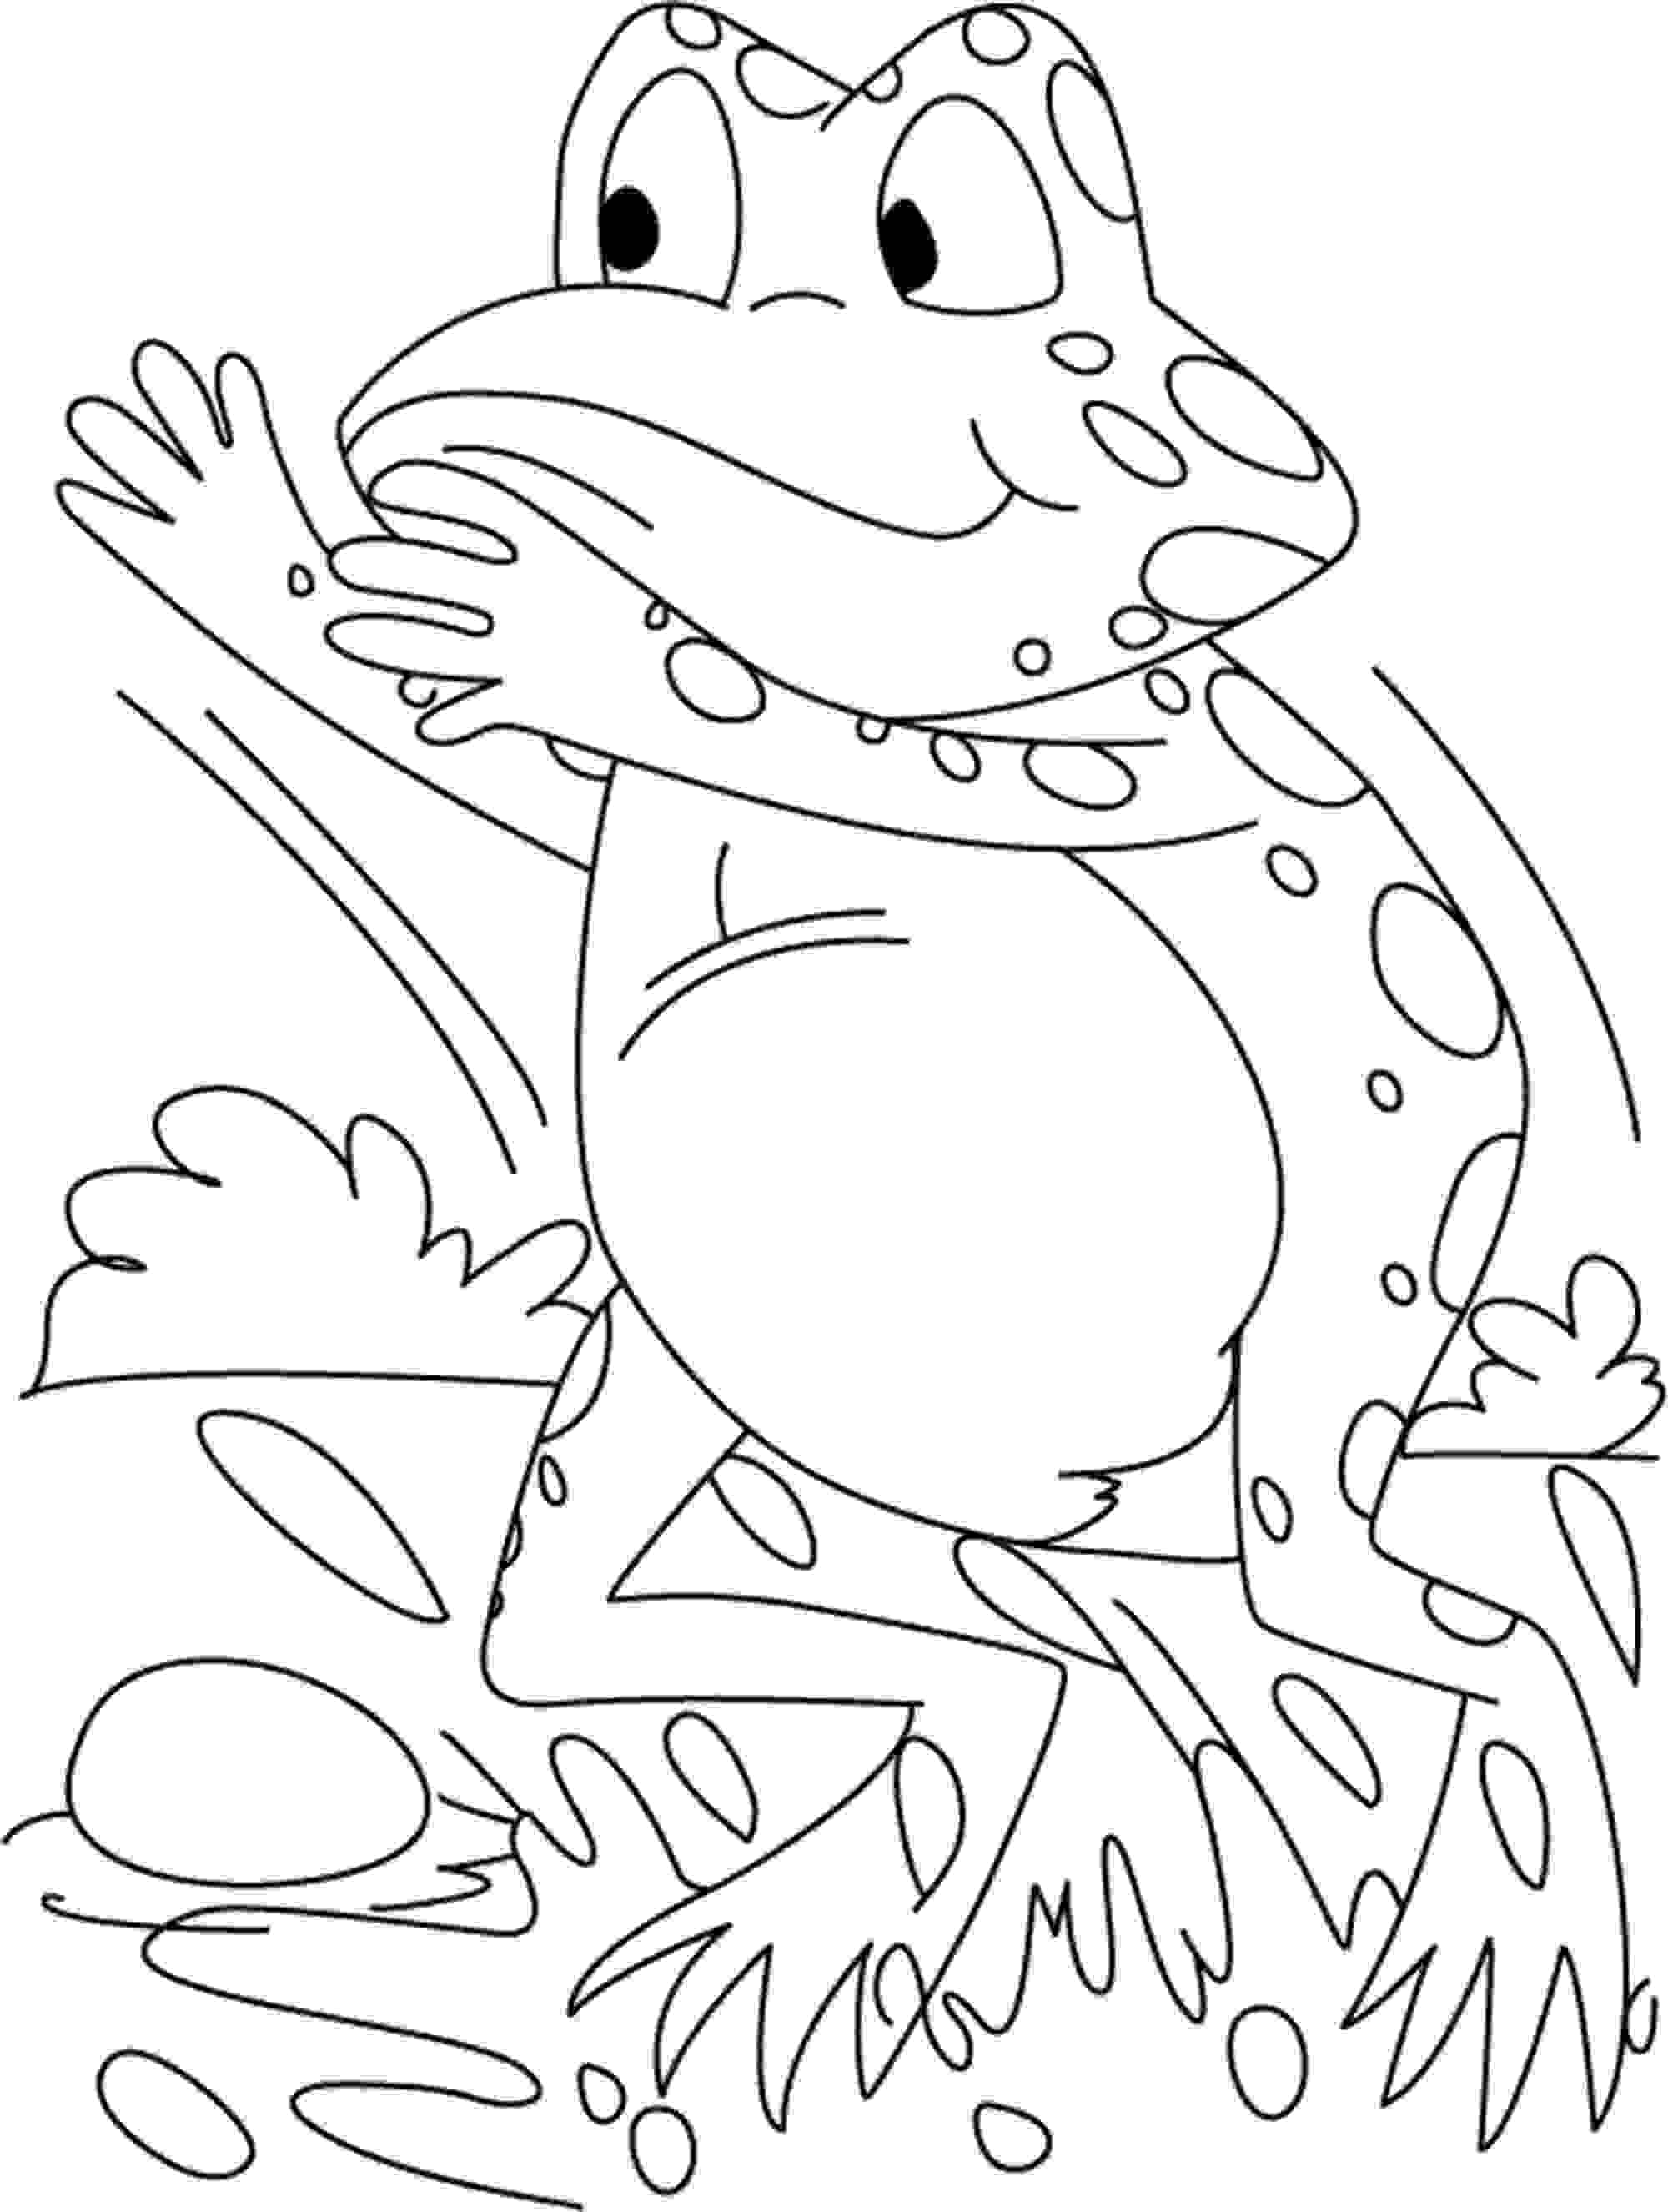 2000x2652 Mainstream Coloring Pages Of Tree Frogs Free The Red Eye Frog